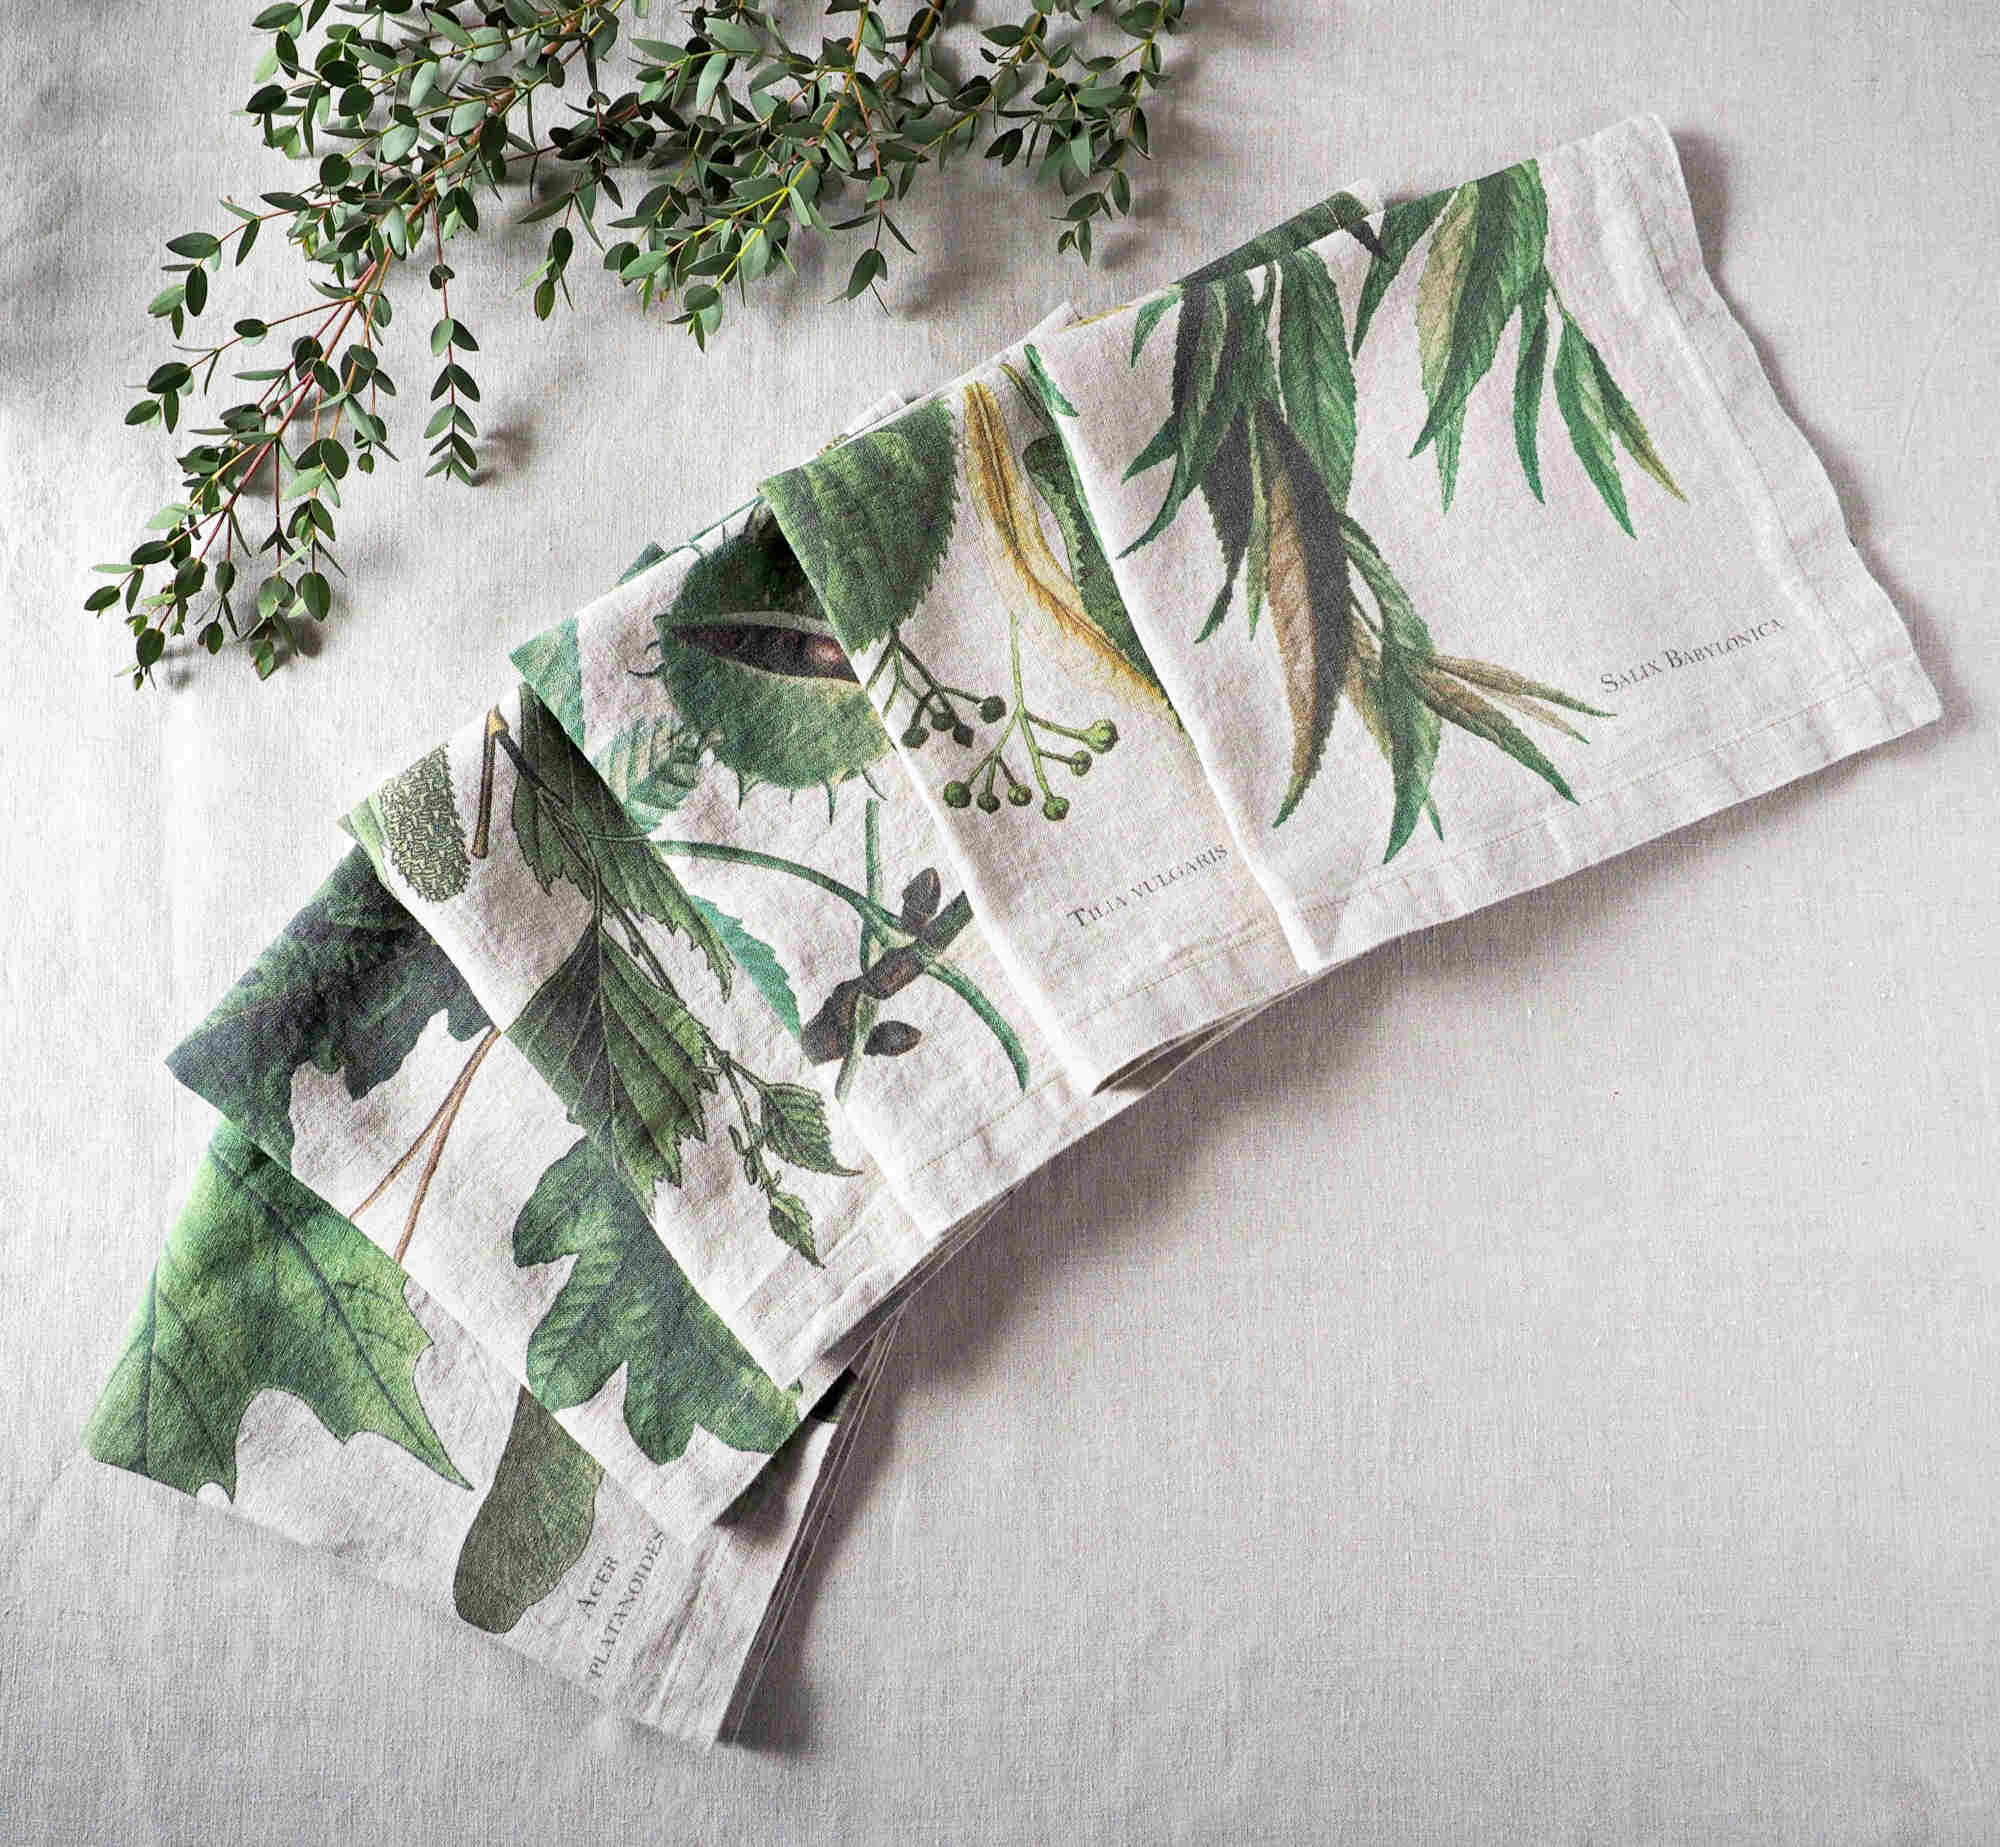 Lush green trees linen napkins from Linoroom